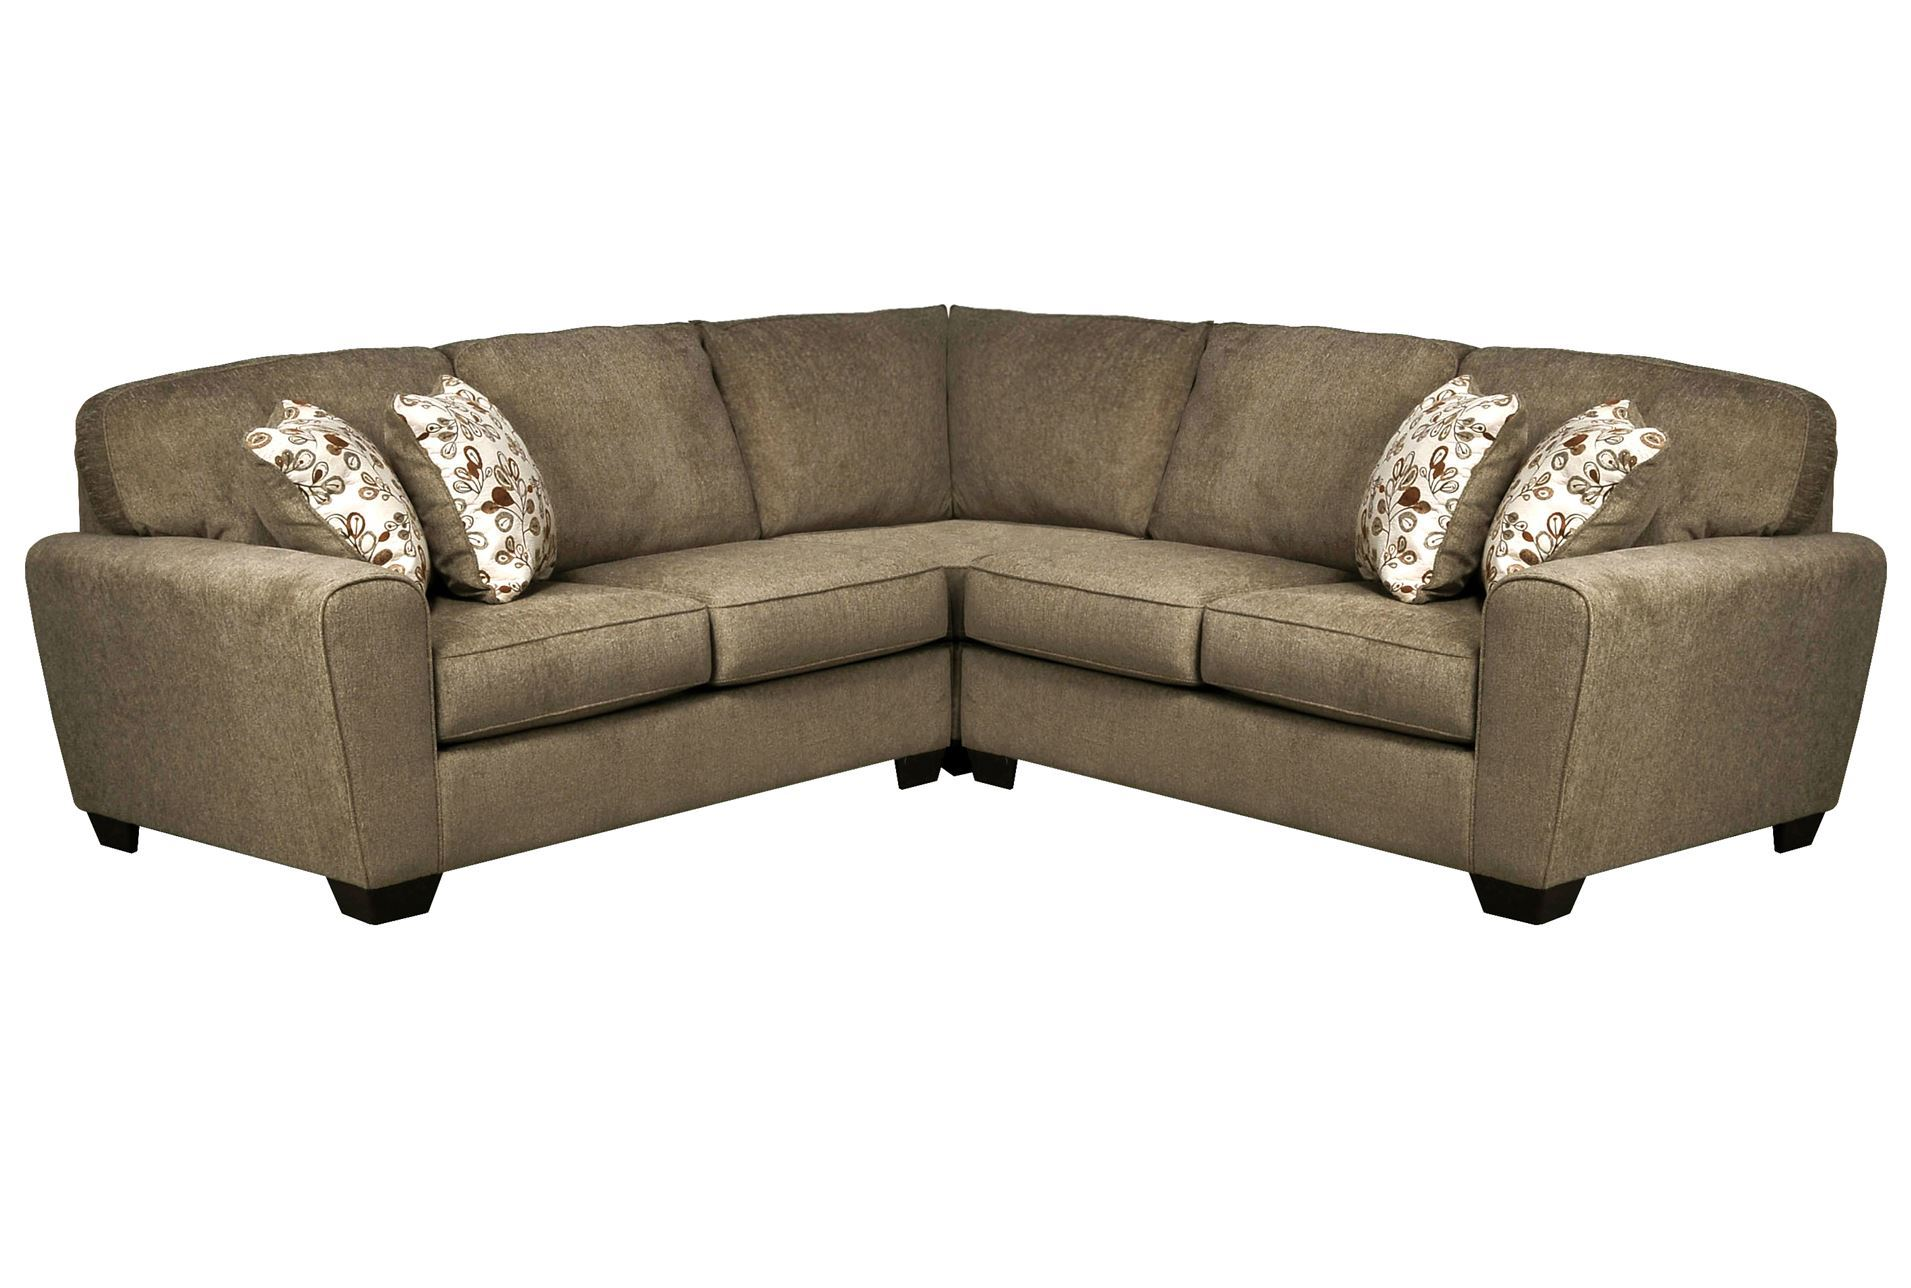 Patola Park 3 Piece Sectional - Living Spaces